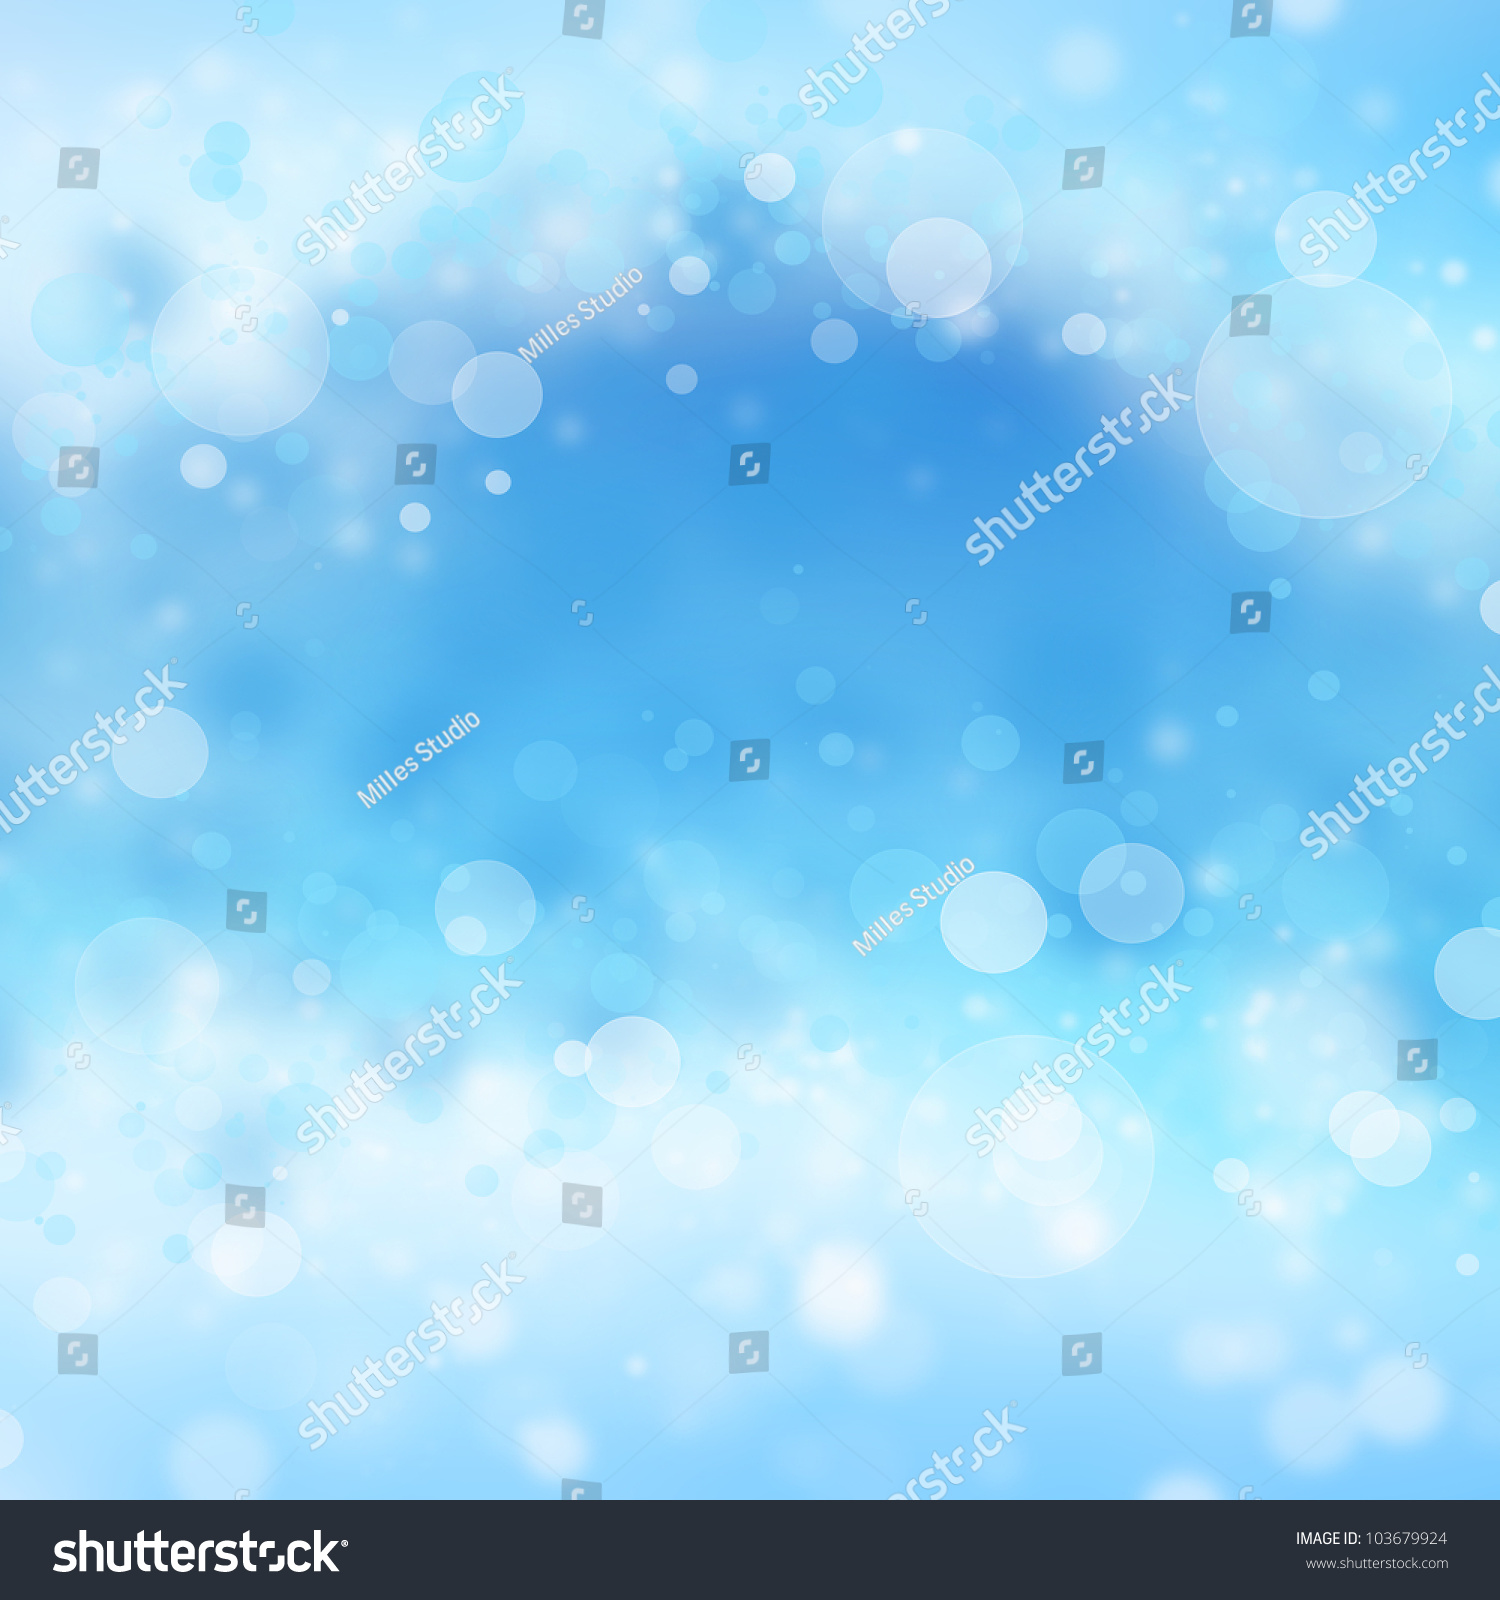 Light Silver Abstract Freshness Background With White Ice Tinsel